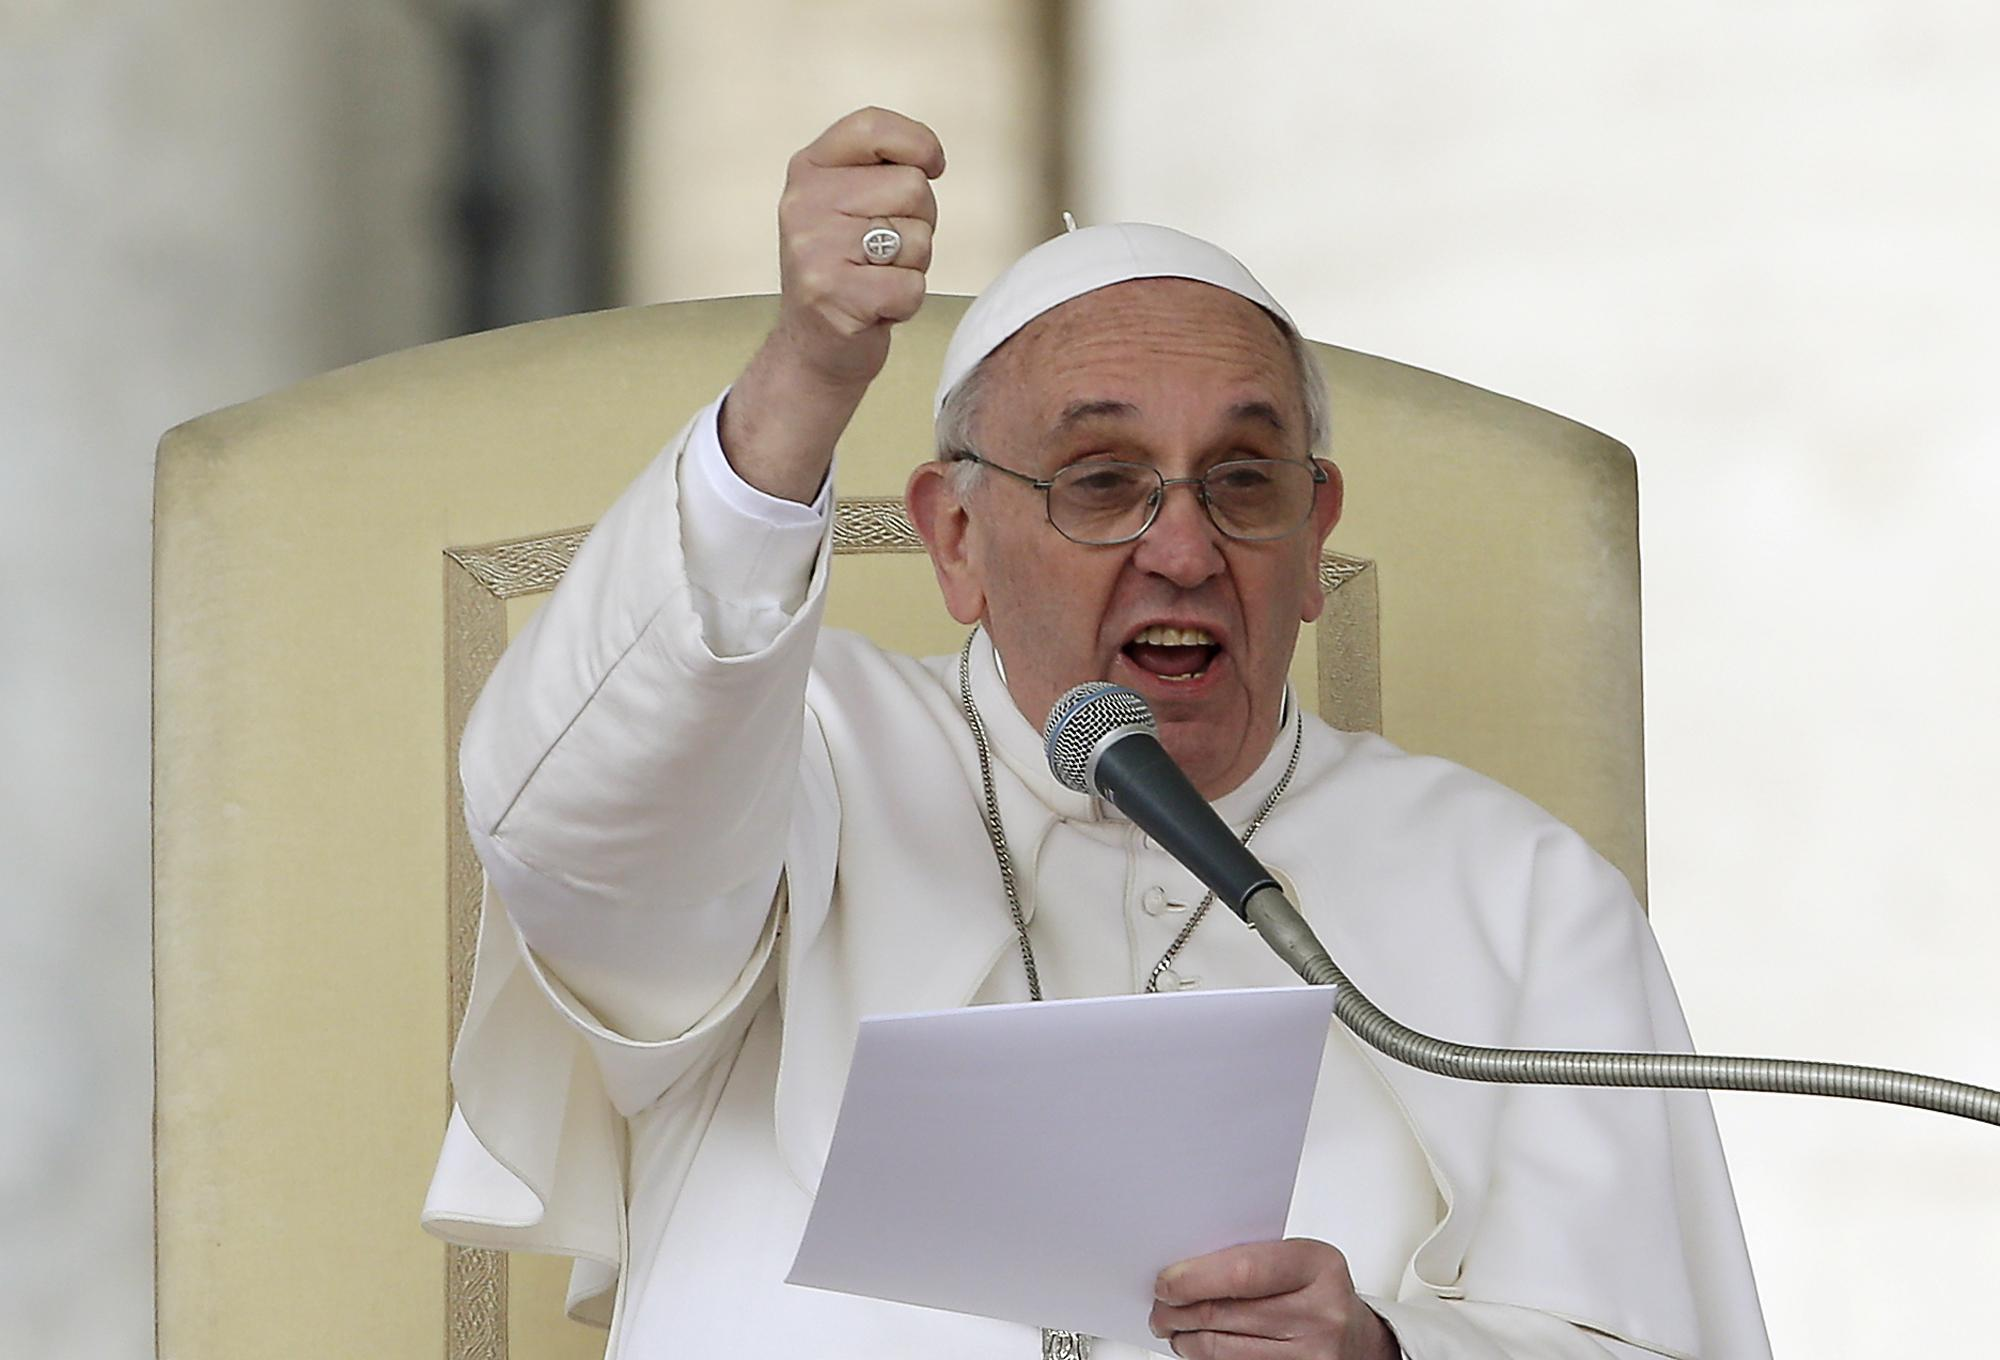 Pope Francis gestures as he speaks during his weekly general audience in St. Peter square at the Vatican Wednesday, April 3, 2013. (AP Photo/Alessandra Tarantino)